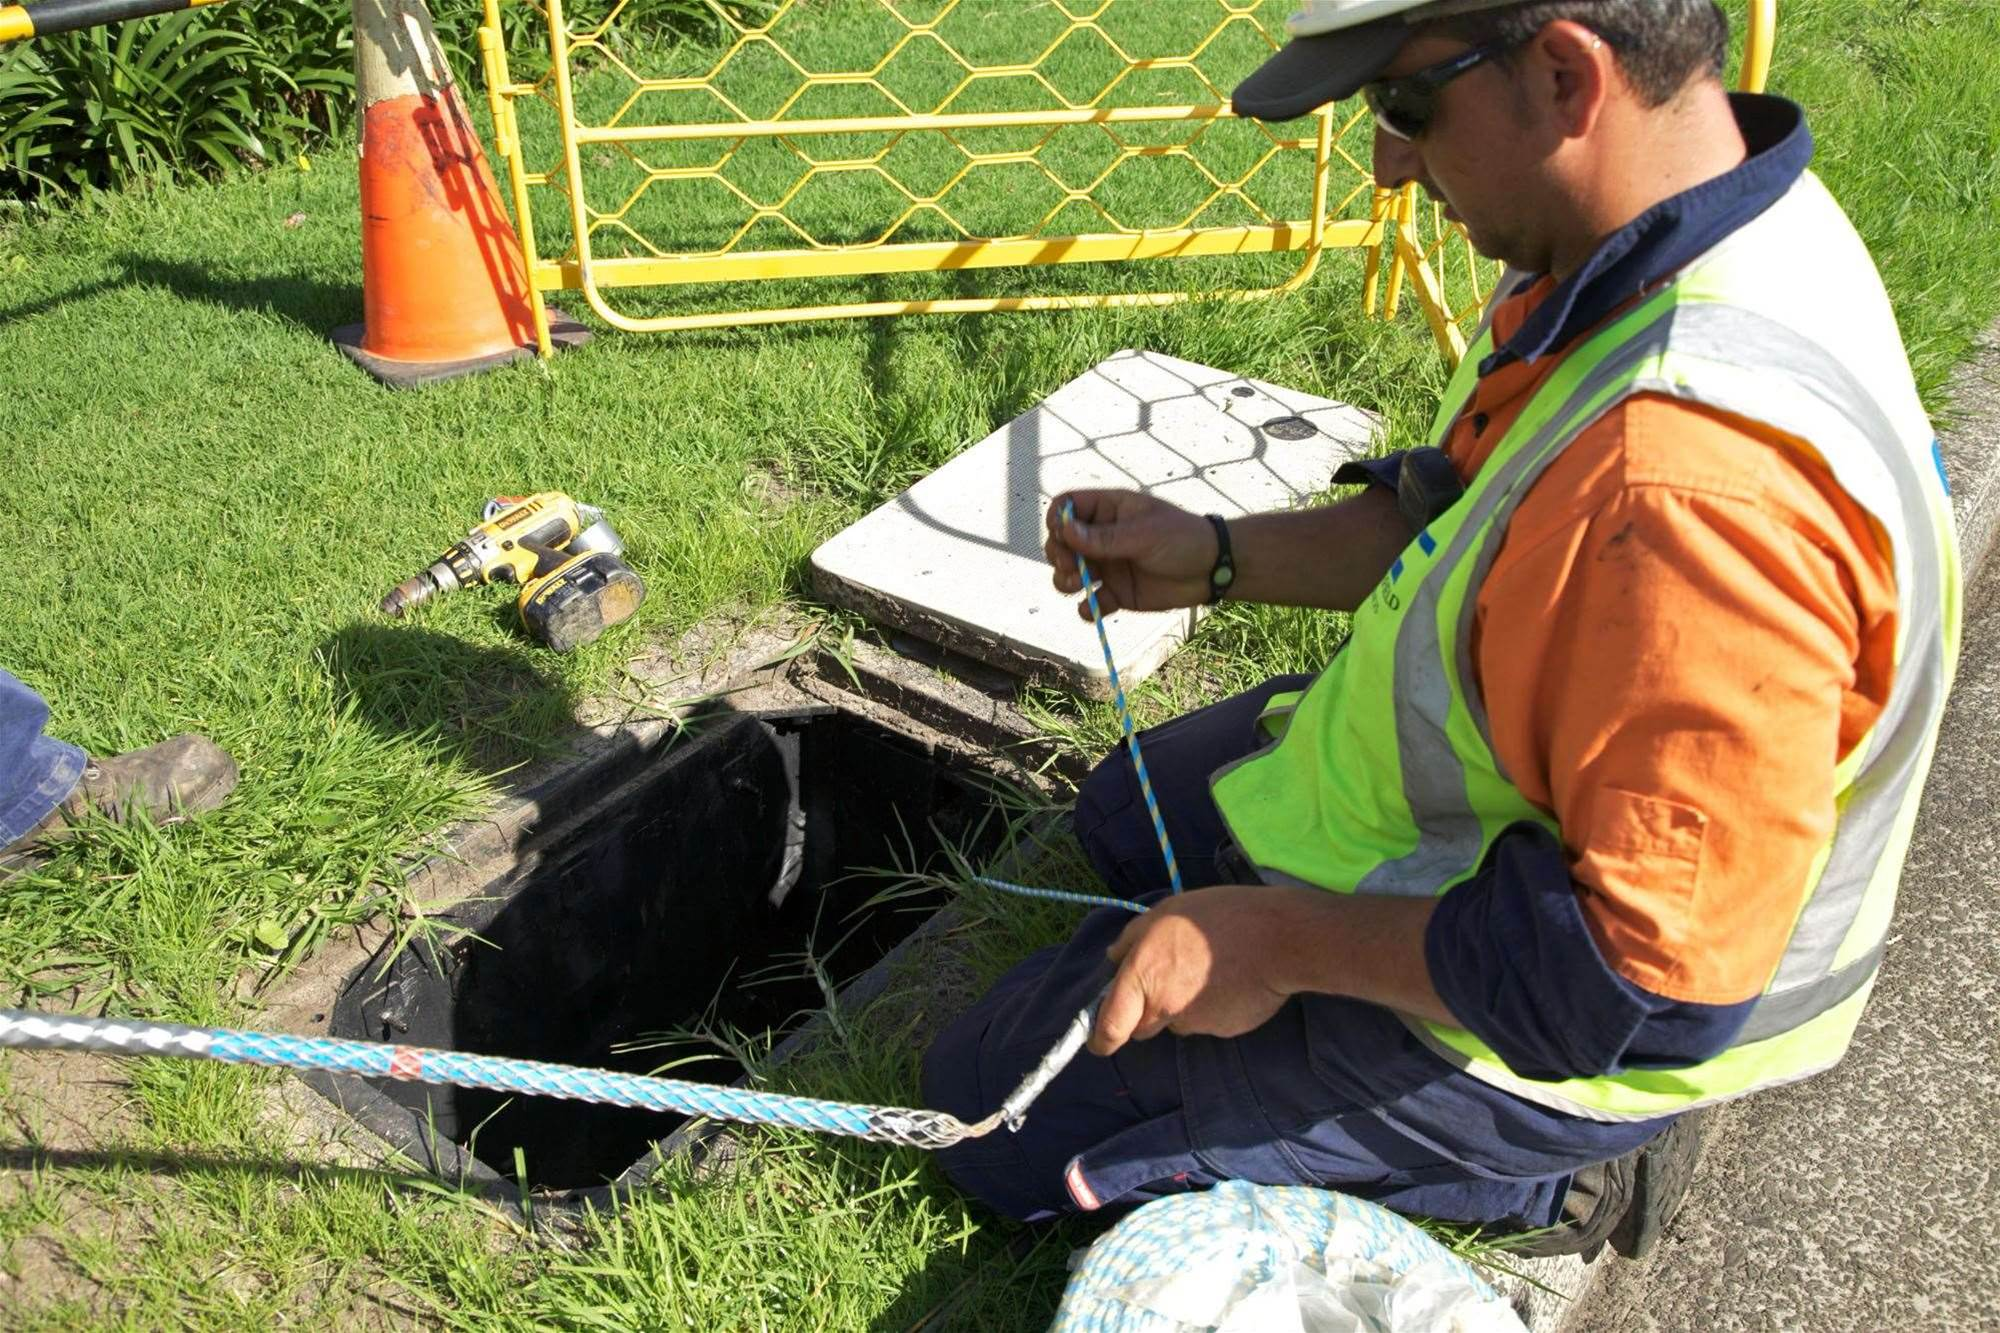 NBN Co reveals suburbs 'likely' to get FTTdp